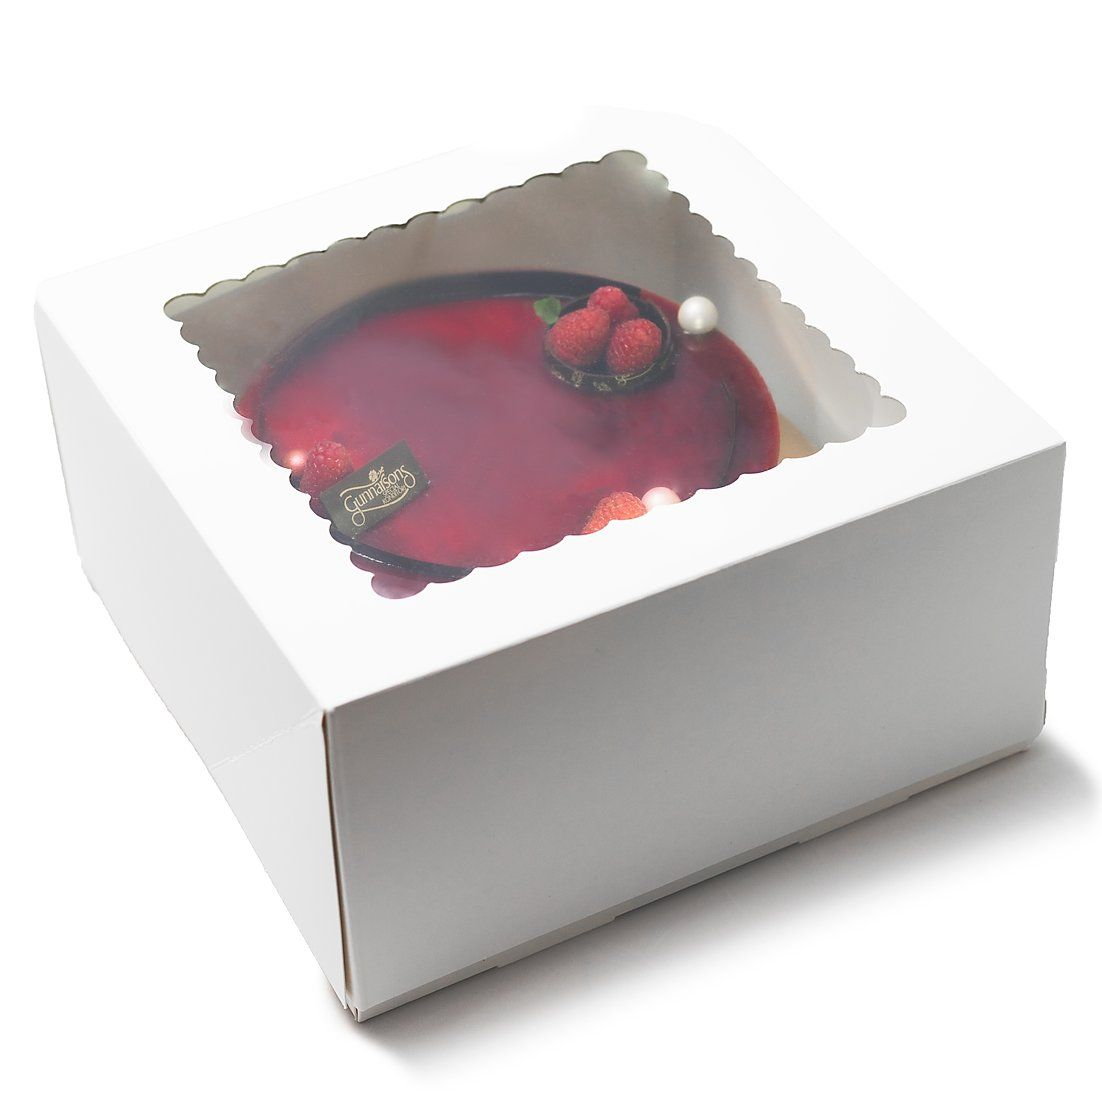 Cake boxes 10x10x5 pack of 25 cuisinerboxes dessert